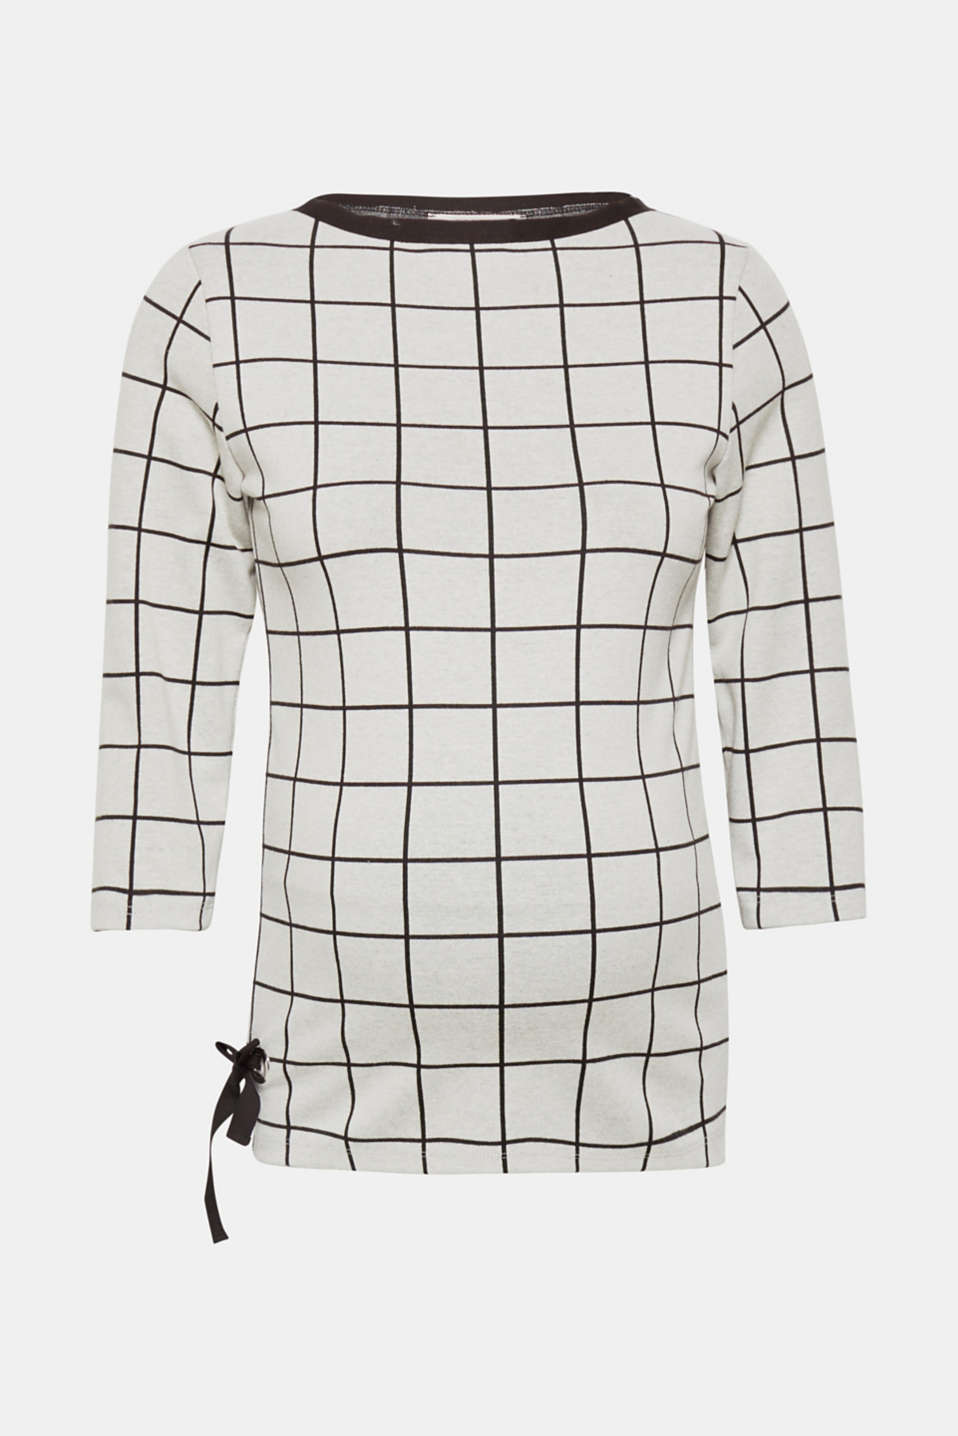 Long sleeve top with a graphic pattern and stretch for comfort, LCBLACK, detail image number 0